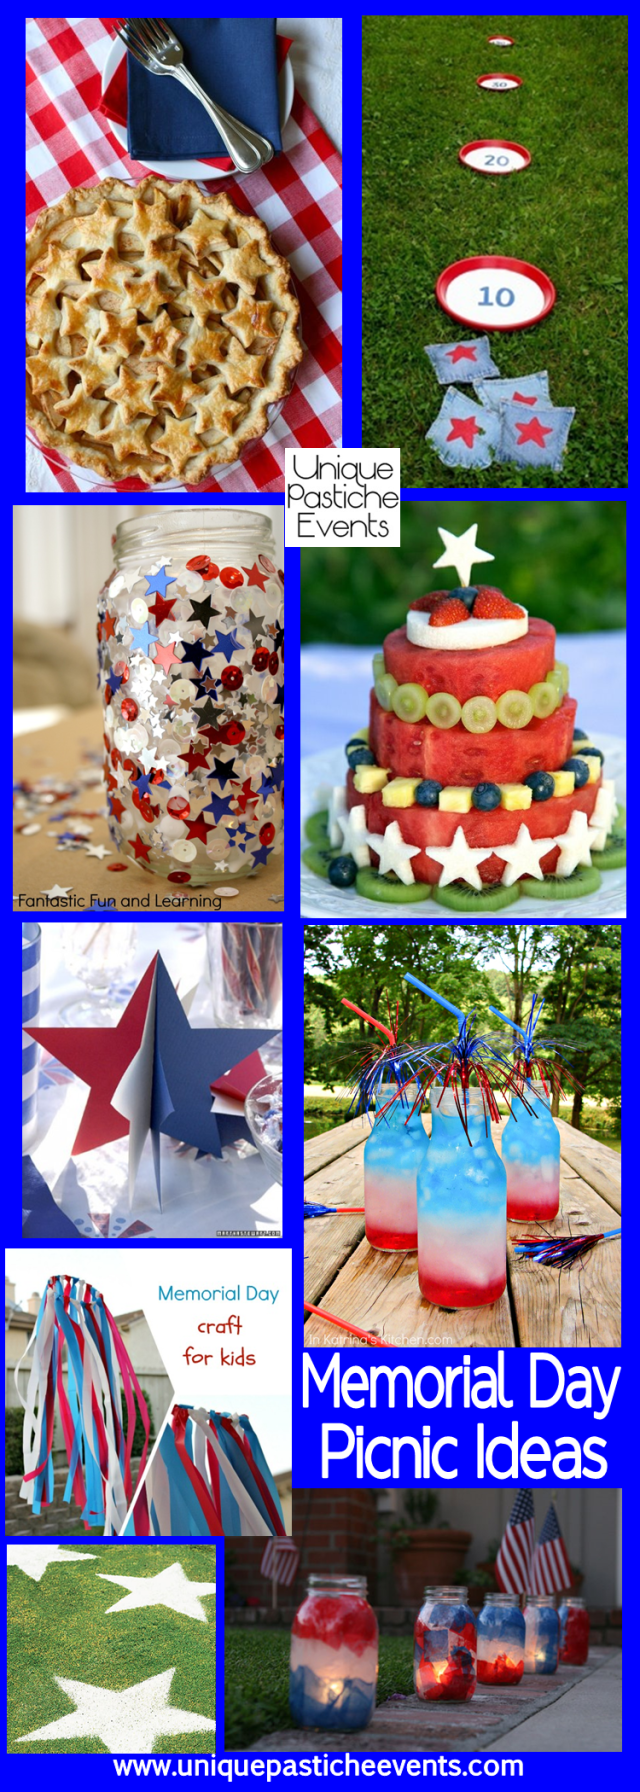 Easy Memorial Day Picnic Ideas